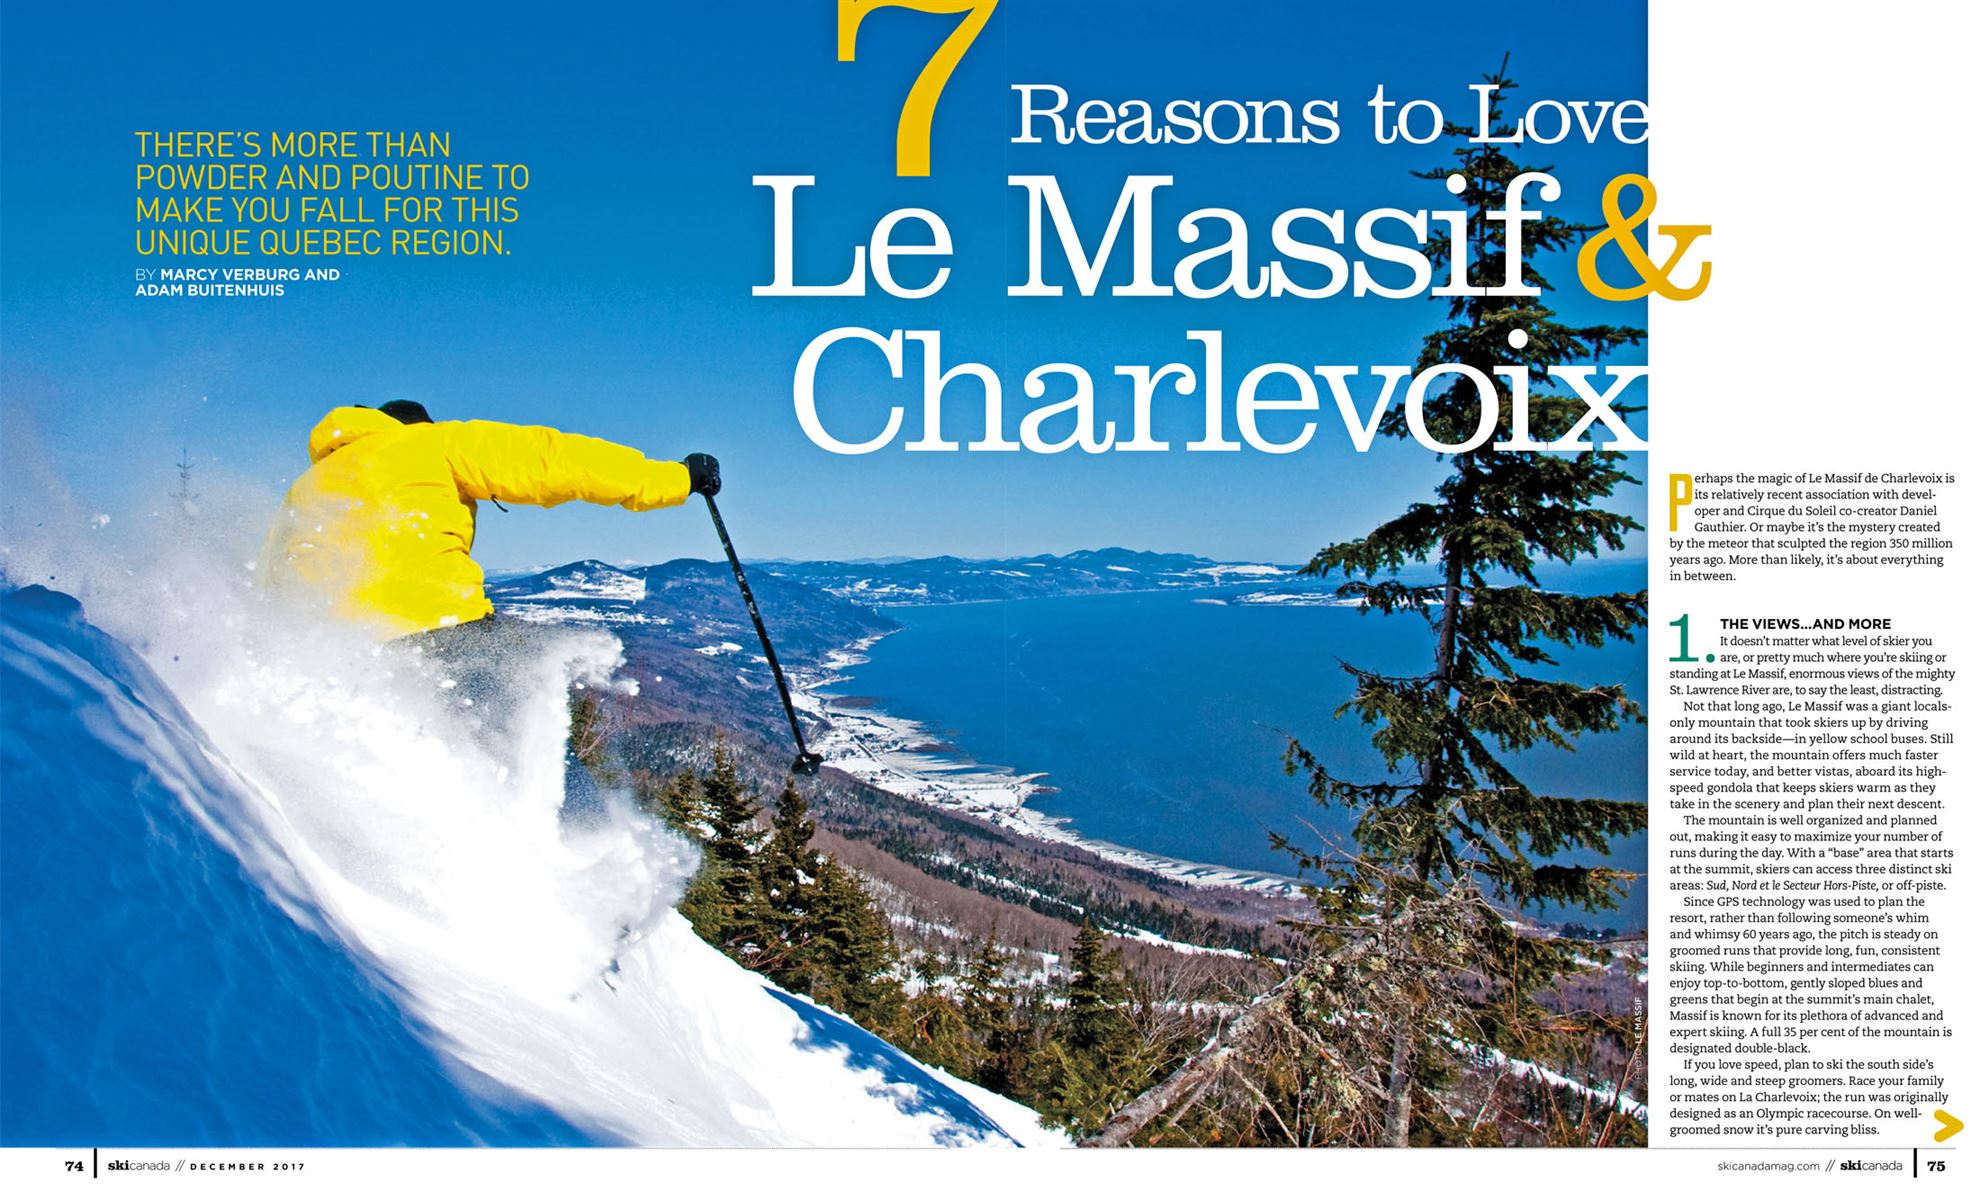 f5f3e0557e1e5 Perhaps the magic of Le Massif de Charlevoix is its relatively recent  association with developer and Cirque du Soleil co-creator Daniel Gauthier.